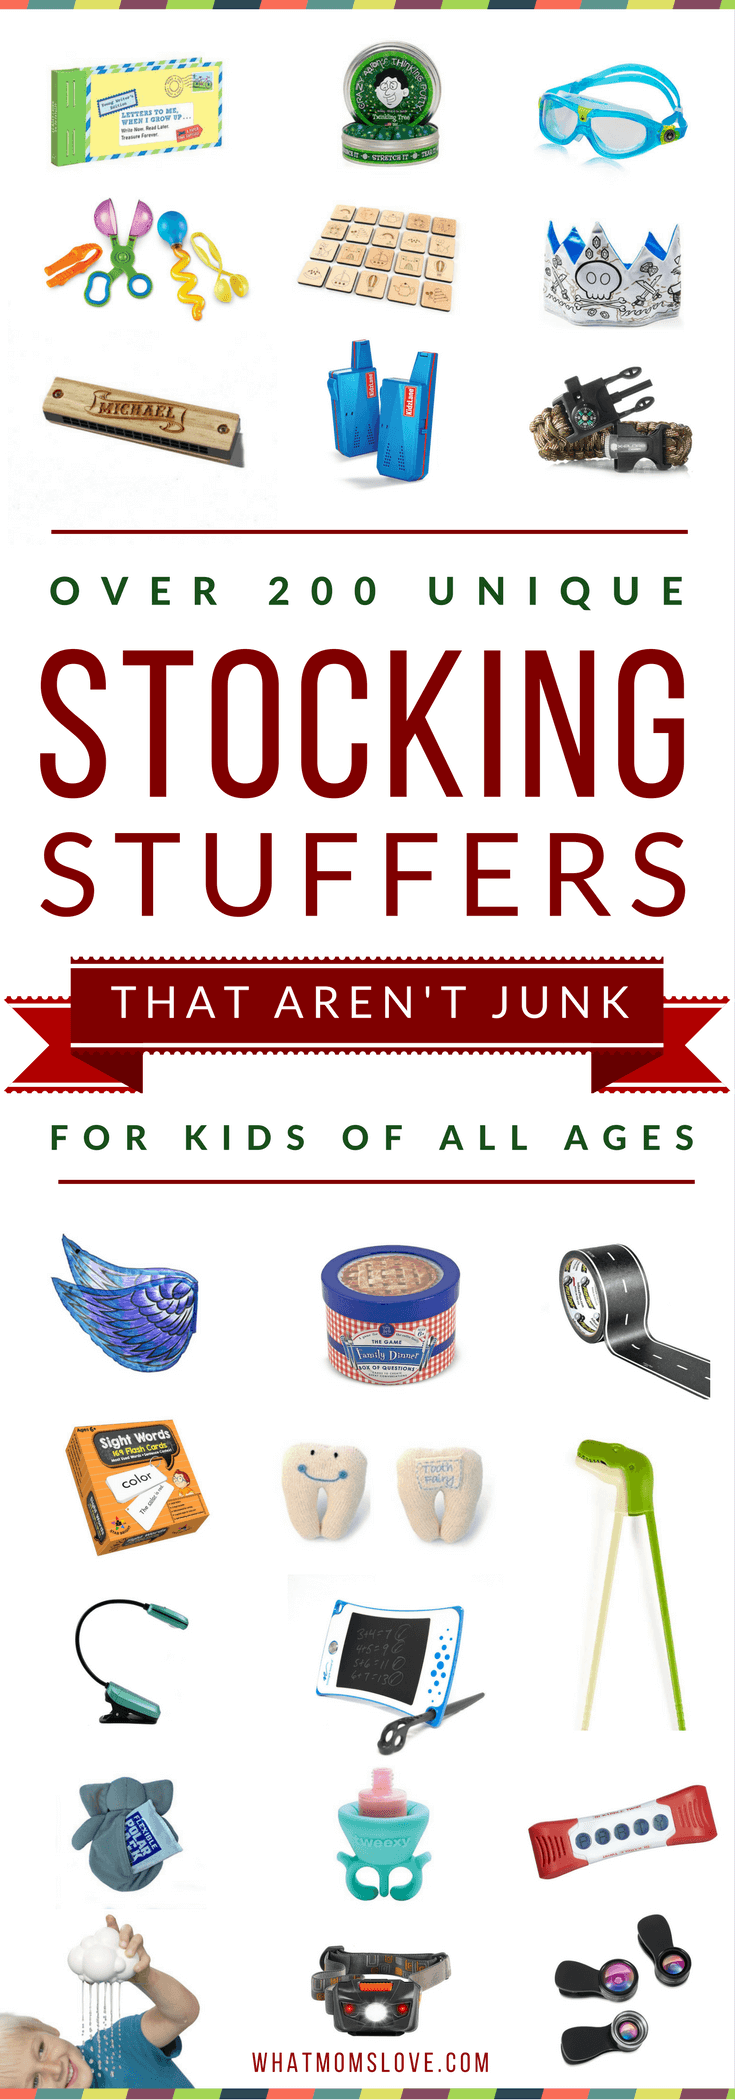 Best Stocking Stuffers For Kids Small Gift Ideas Babies Toddlers Tweens